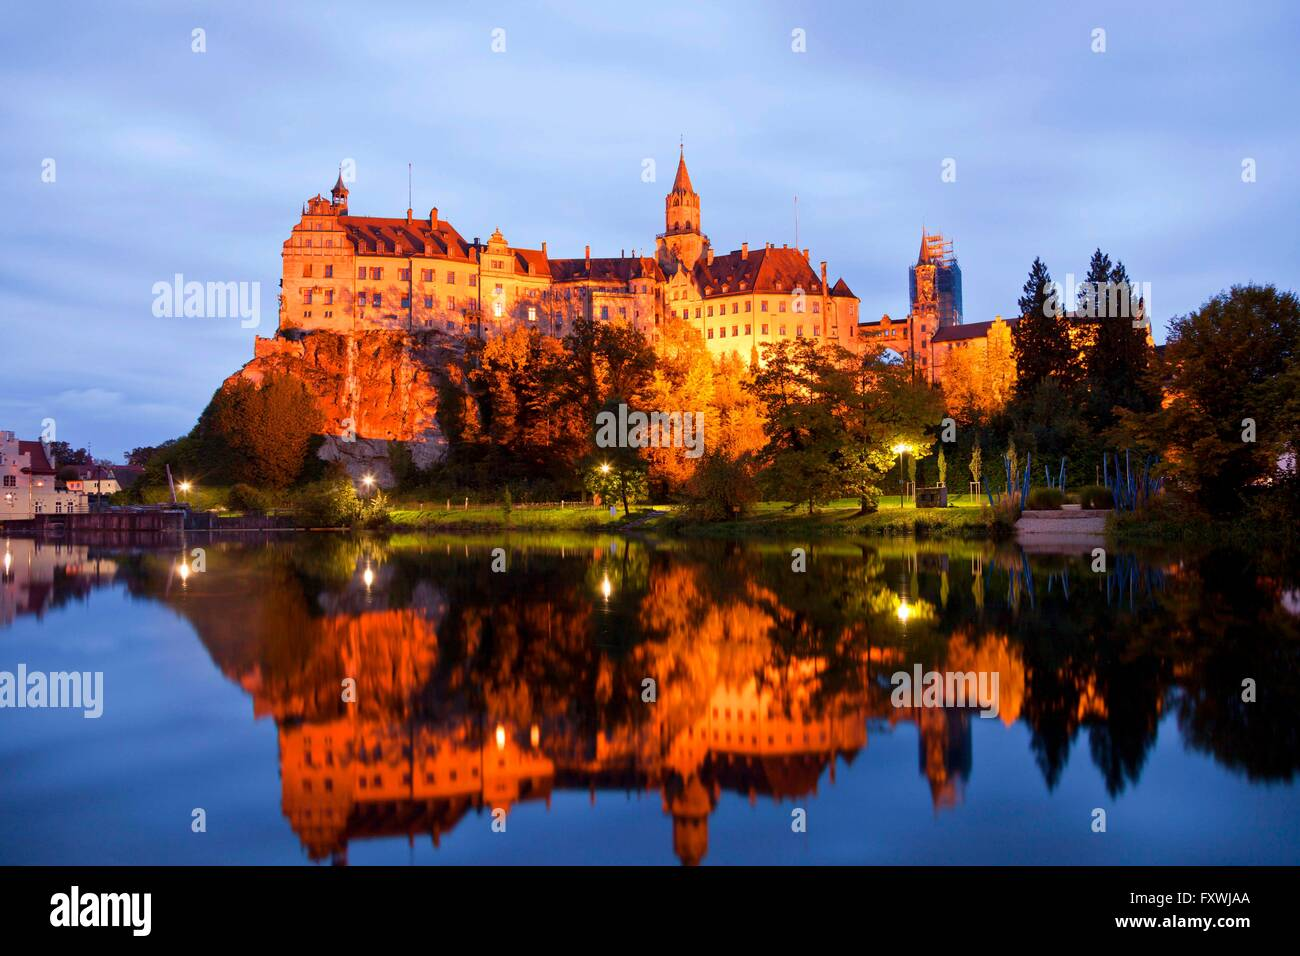 Sigmaringen Castle, princely castle for the Princes of Hohenzollern-Sigmaringen in Sigmaringen, Baden-Wuerttemberg, - Stock Image